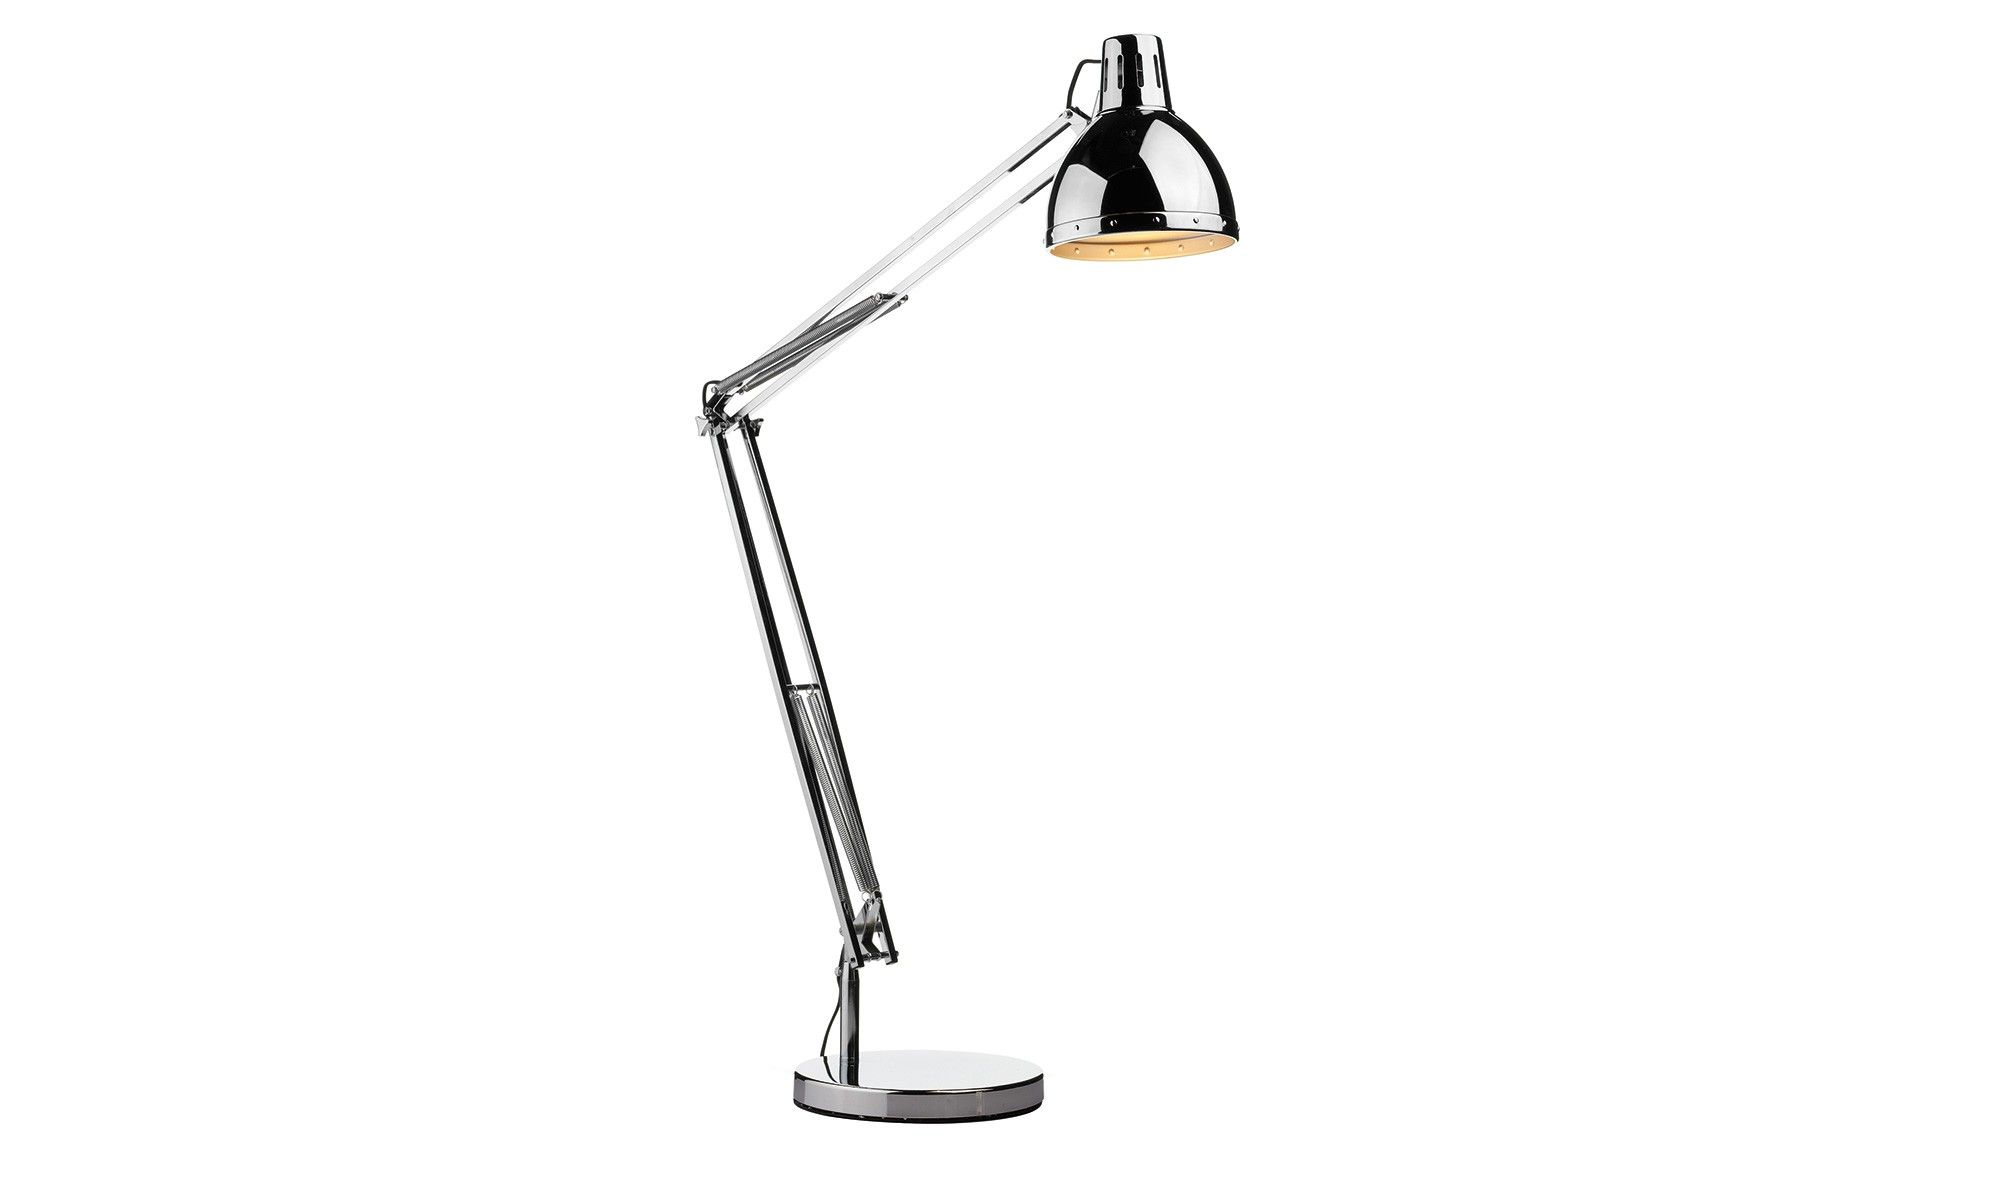 Descriptioncrate A Wow Factor With This Stylish Floor Lamp